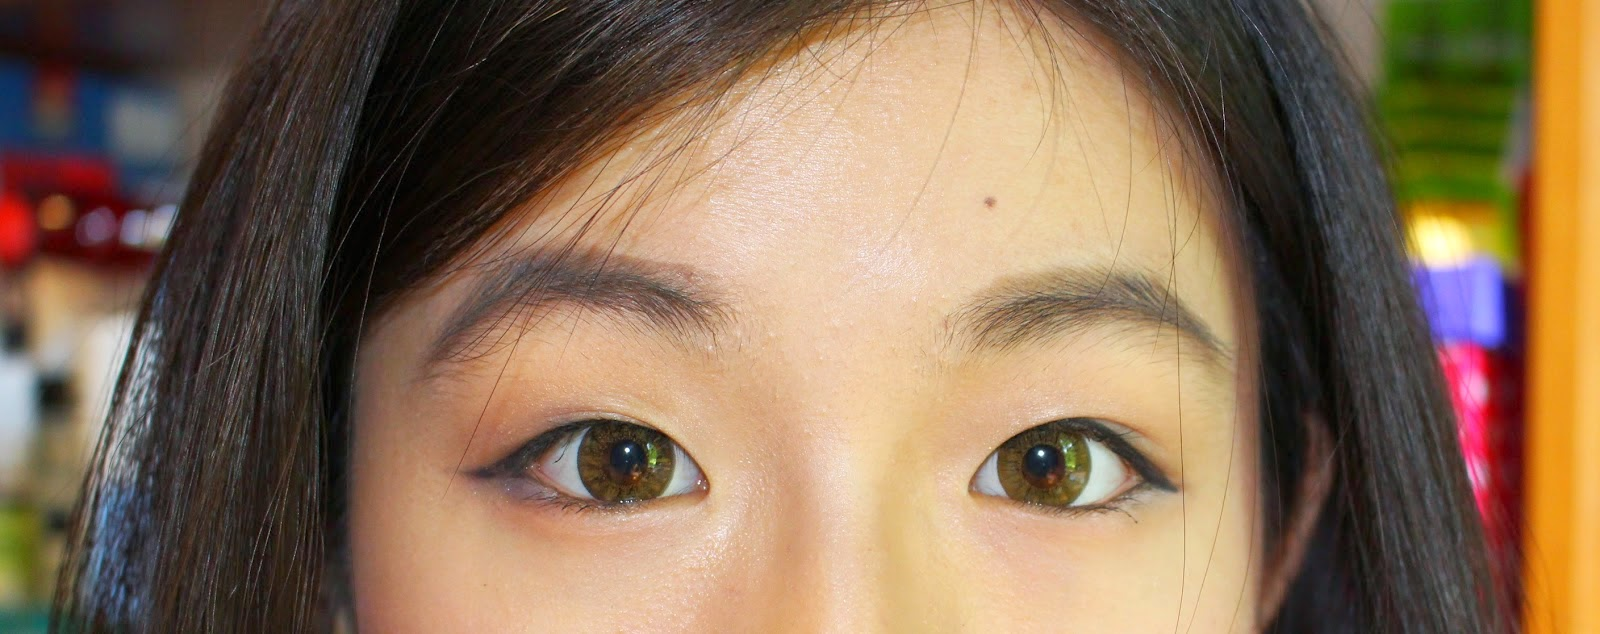 Dolly Eye Crystal I Hazel Contact Lenses